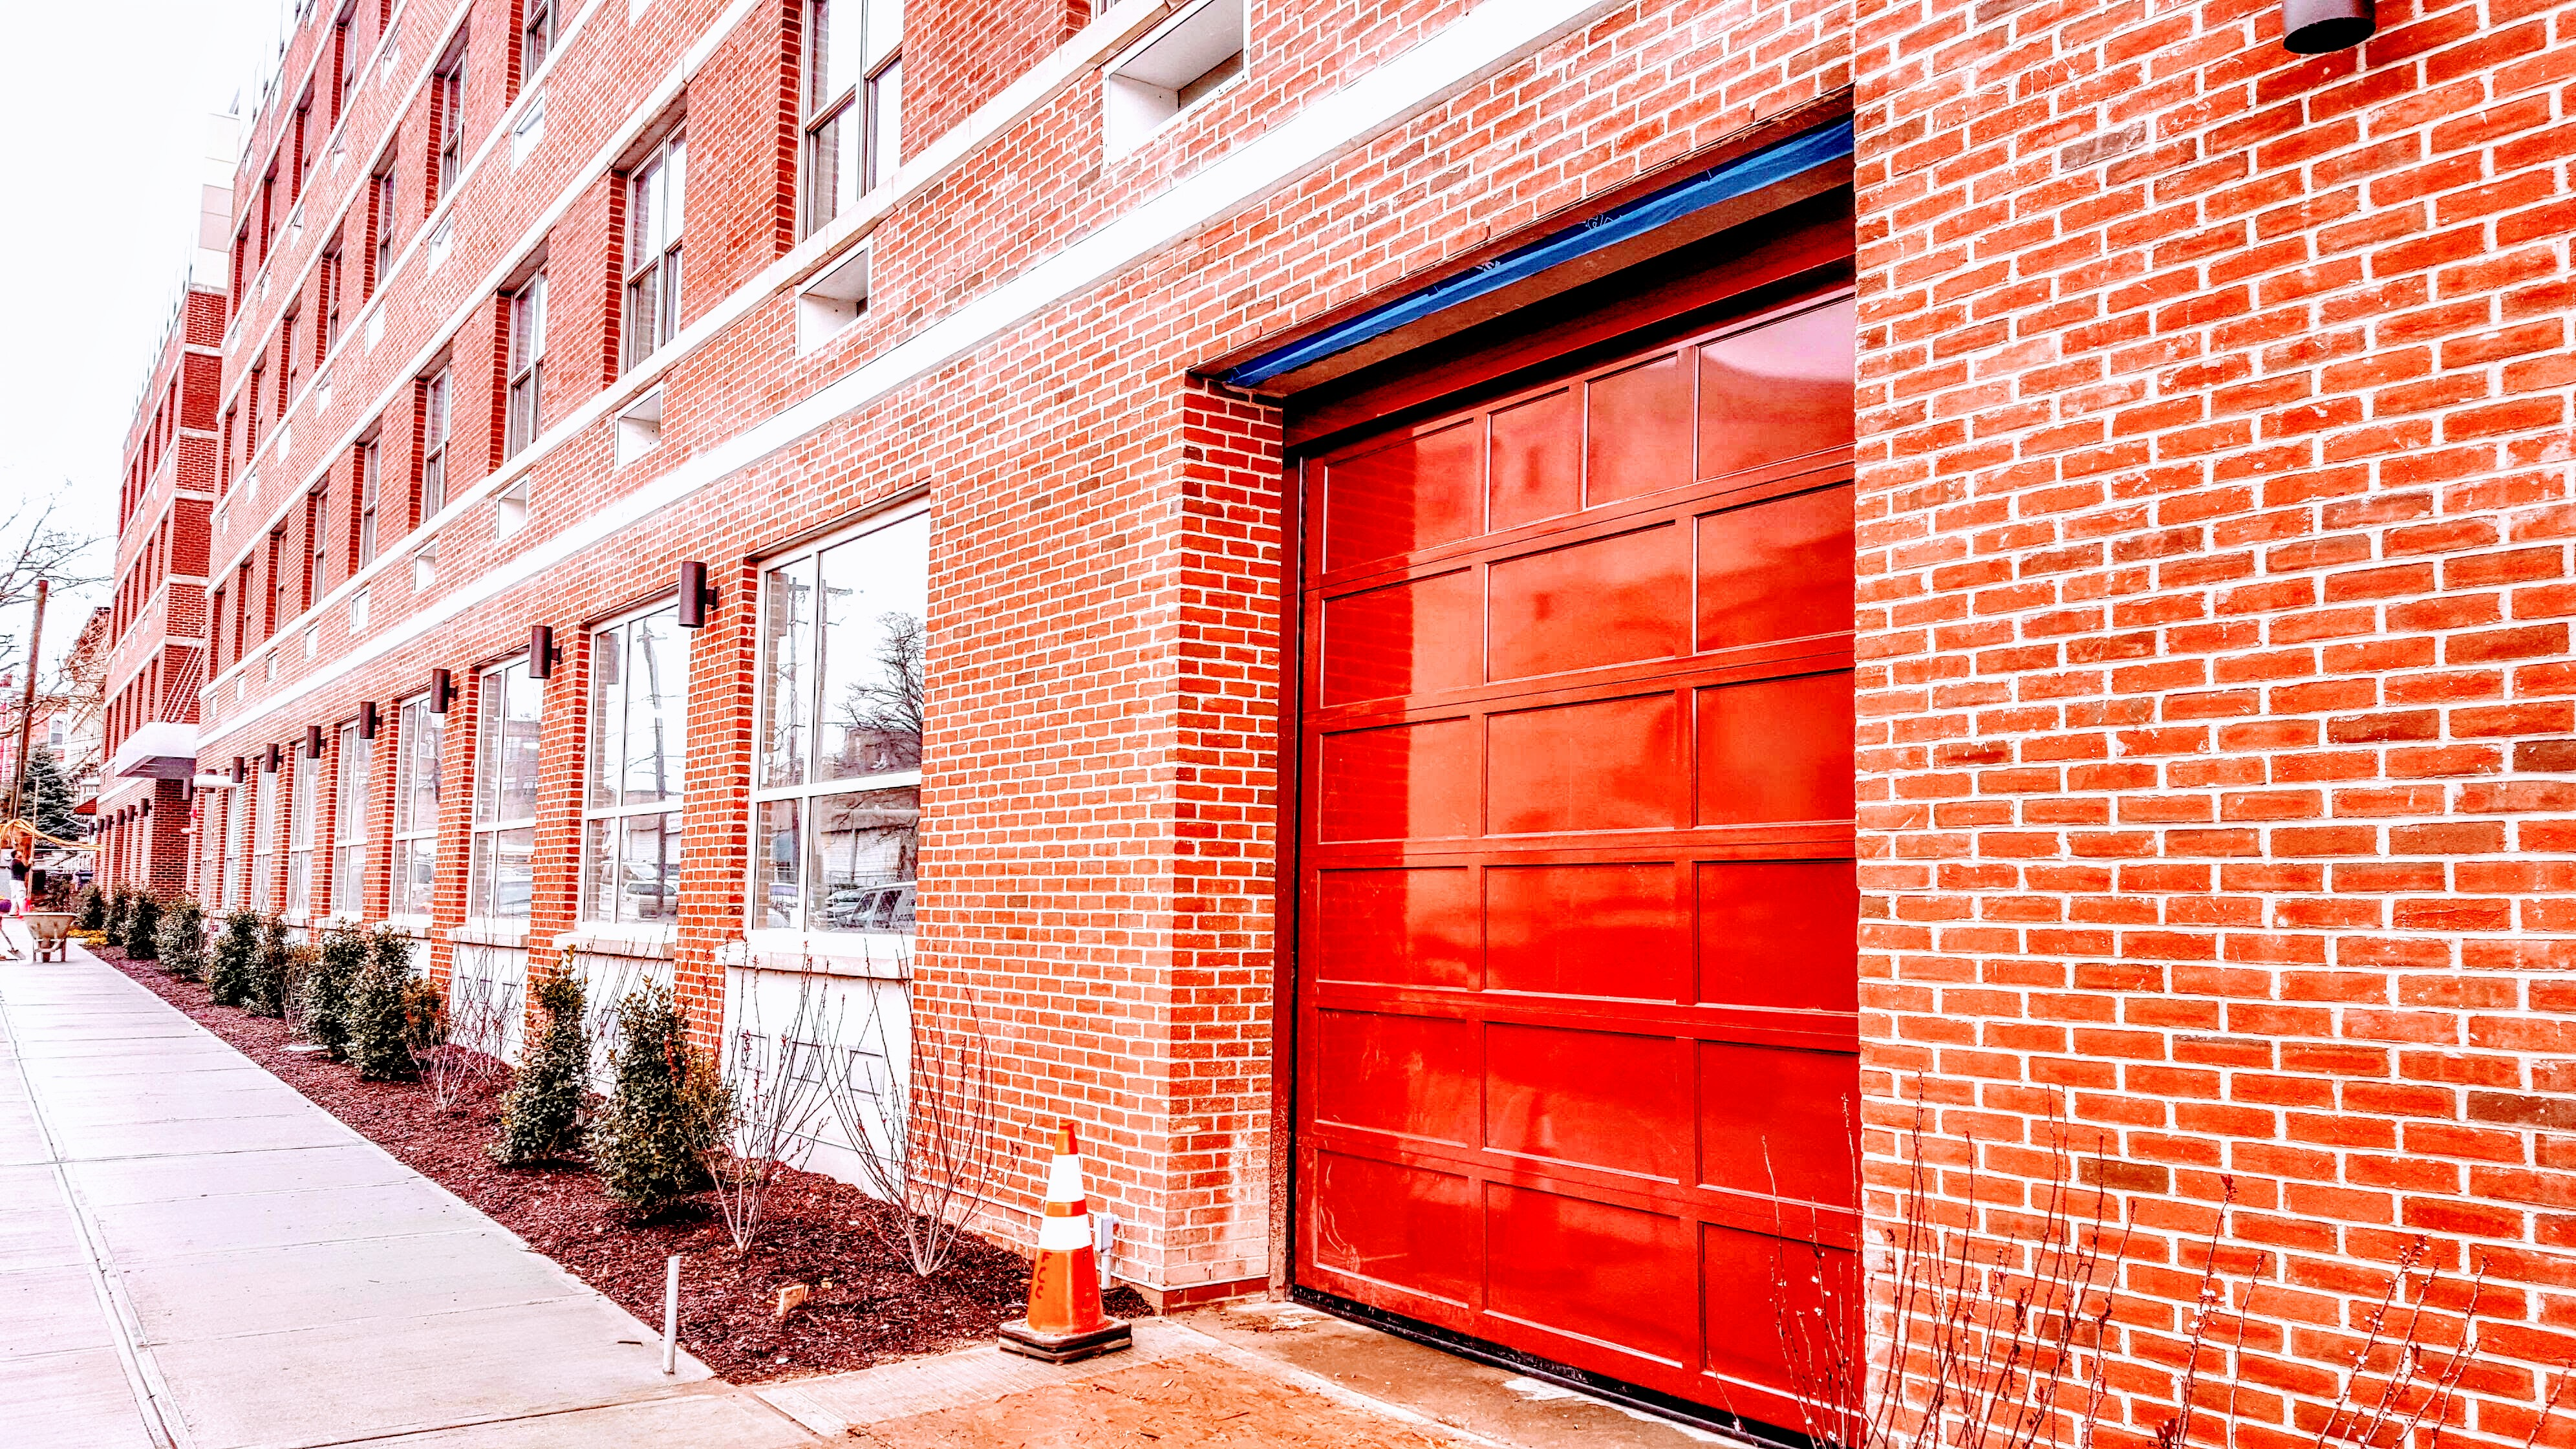 Commercial-Parking-Garage-Door-New-Jersey-Hoboken-Jersey-City.jpg